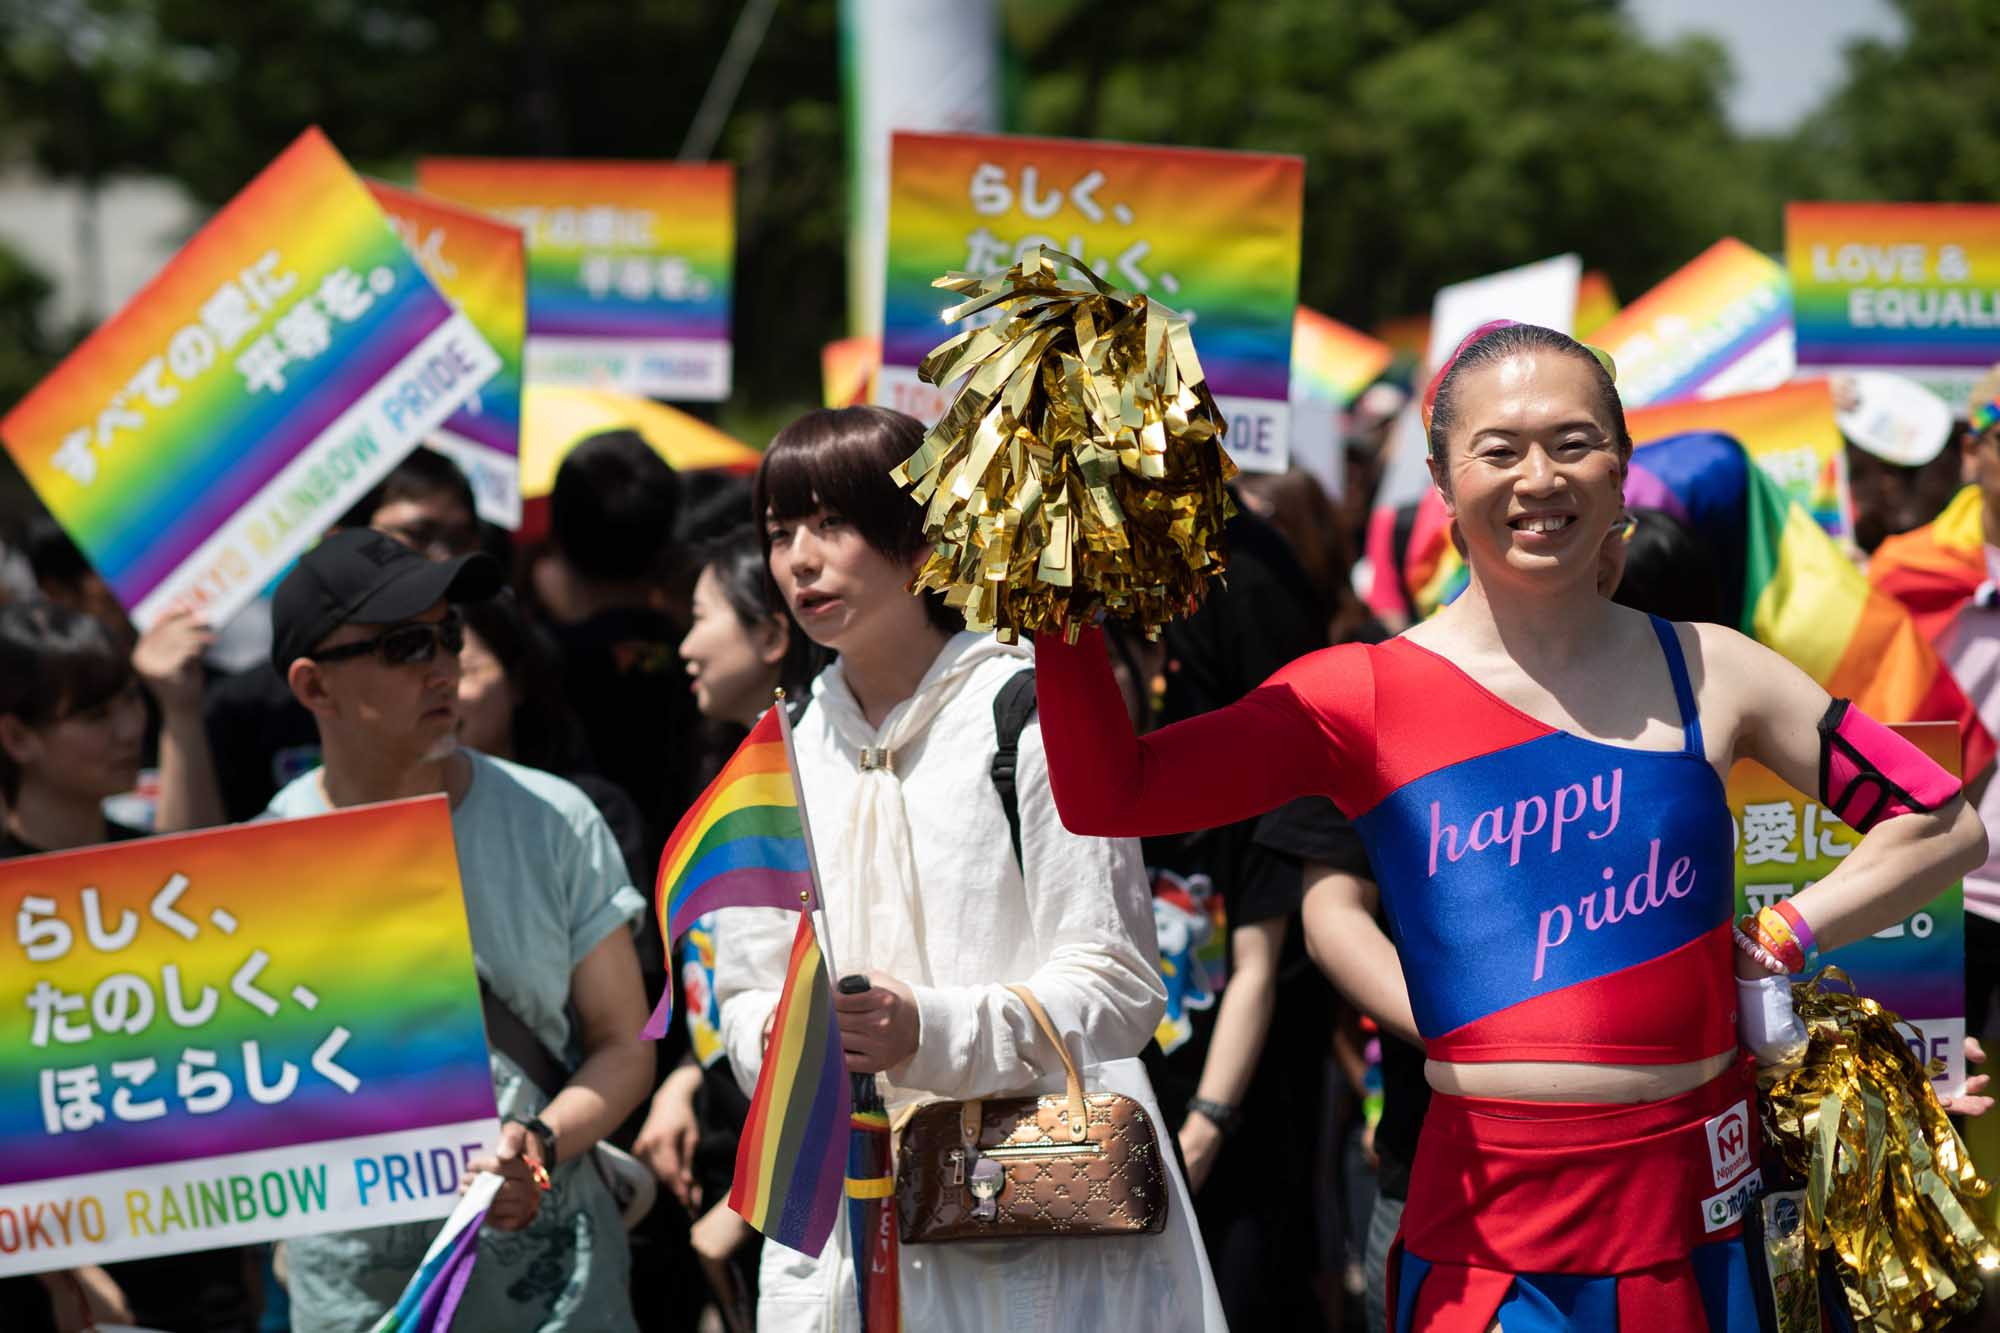 People attend the annual Tokyo Rainbow Parade on May 6, 2018, to show support for members of the LGBT community. | AFP-JIJI